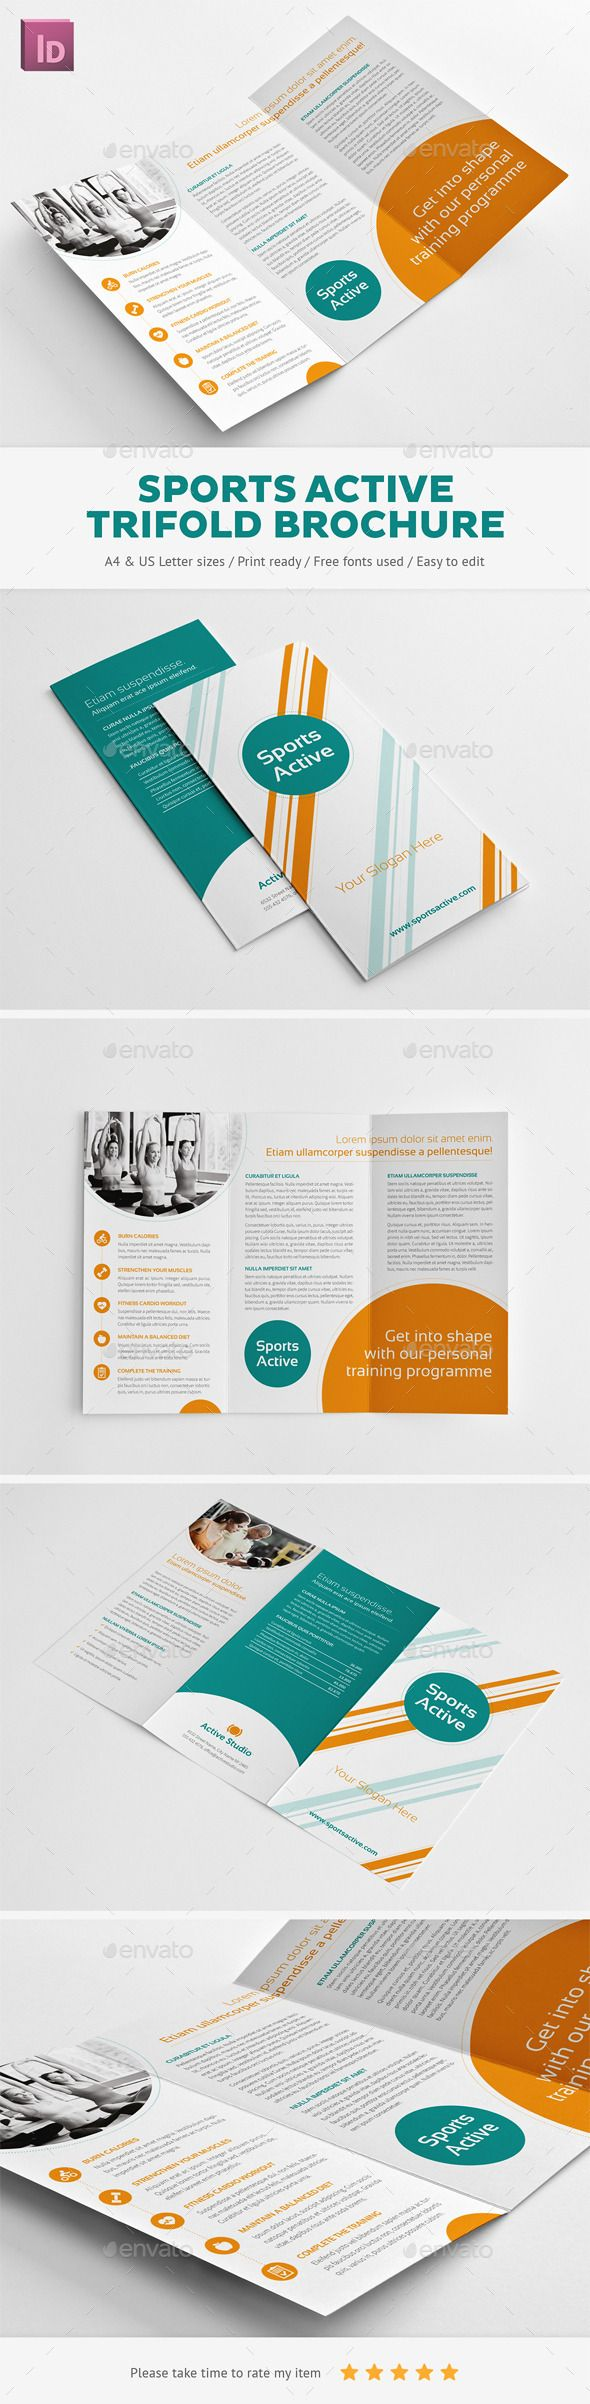 Sports Active Trifold Brochure - Corporate Brochures http://graphicriver.net/item/sports-active-trifold-brochure/9944636?WT.ac=portfolio&WT.z_author=Snowboy